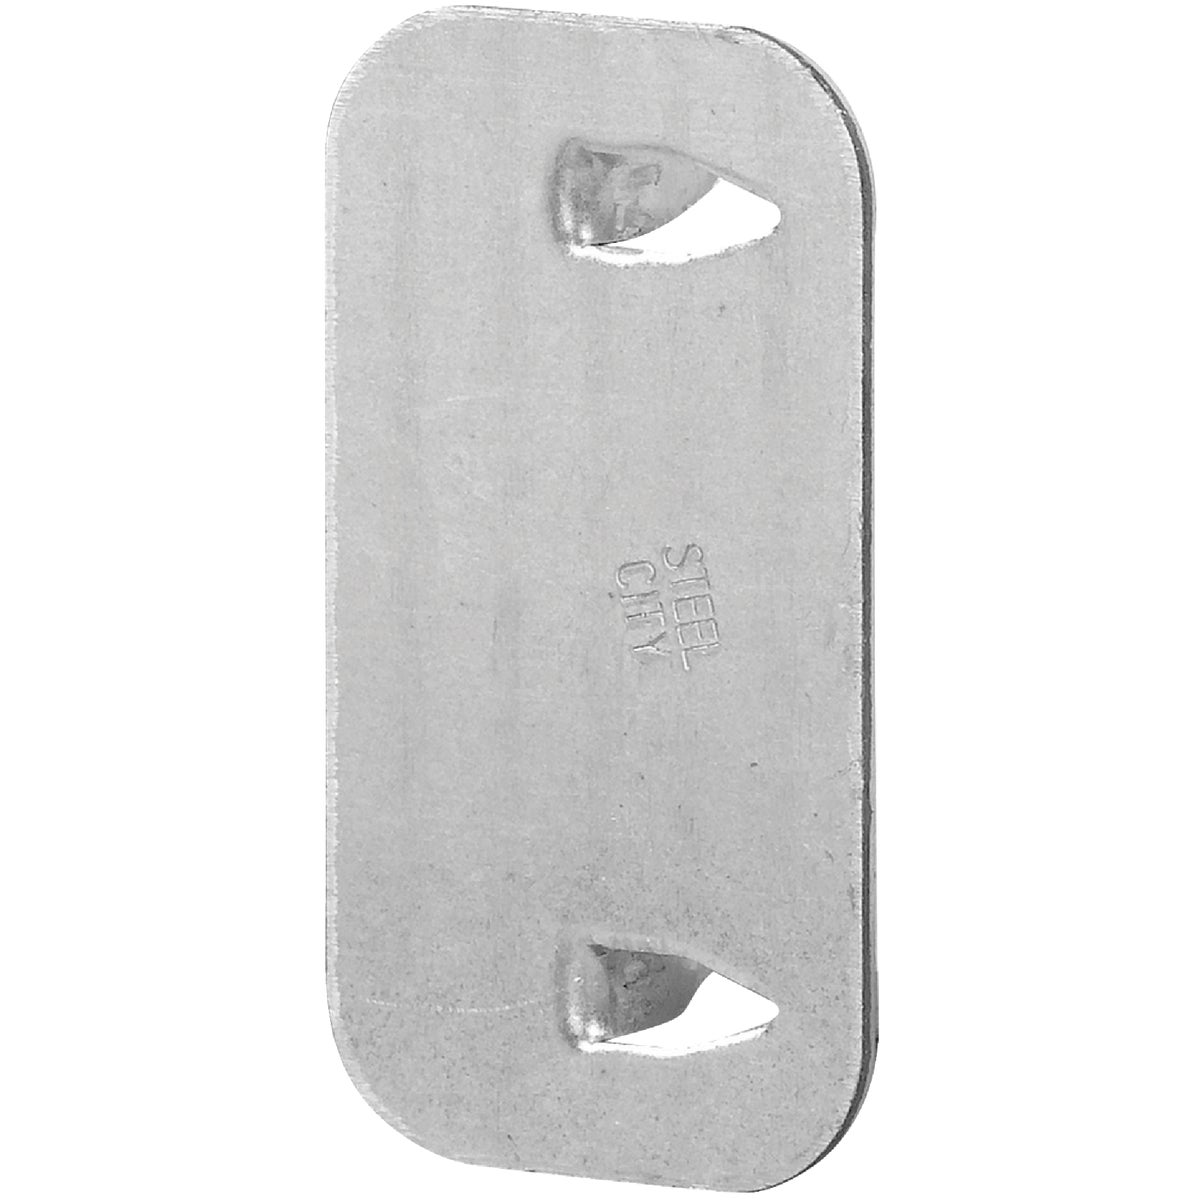 PROTECTOR PLATE - CP1100 by Thomas & Betts